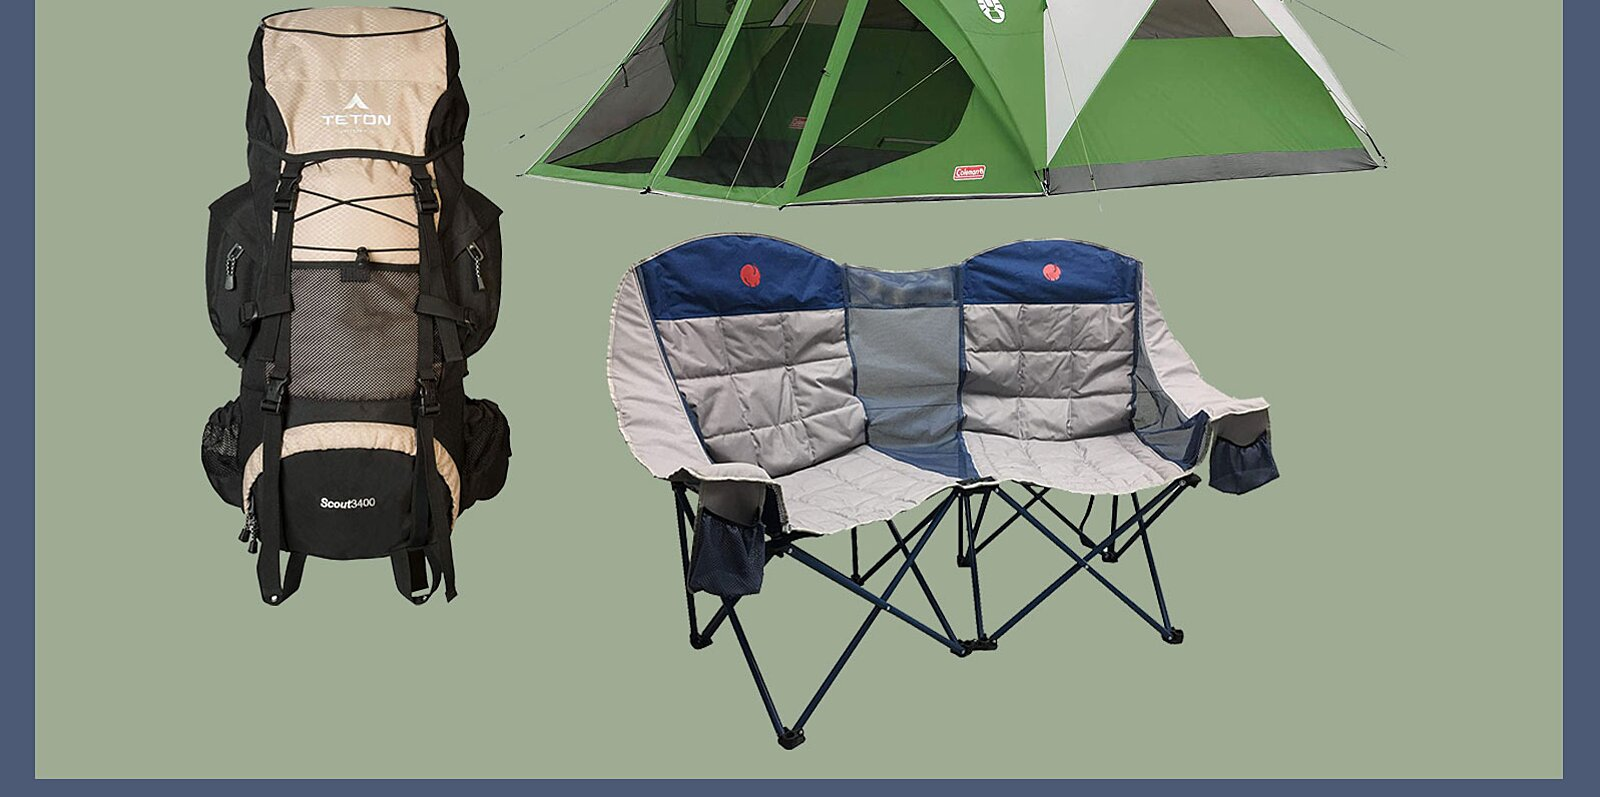 28 Camping Essentials That Are on Major Sale for Cyber Monday - From Backpacks to Tents